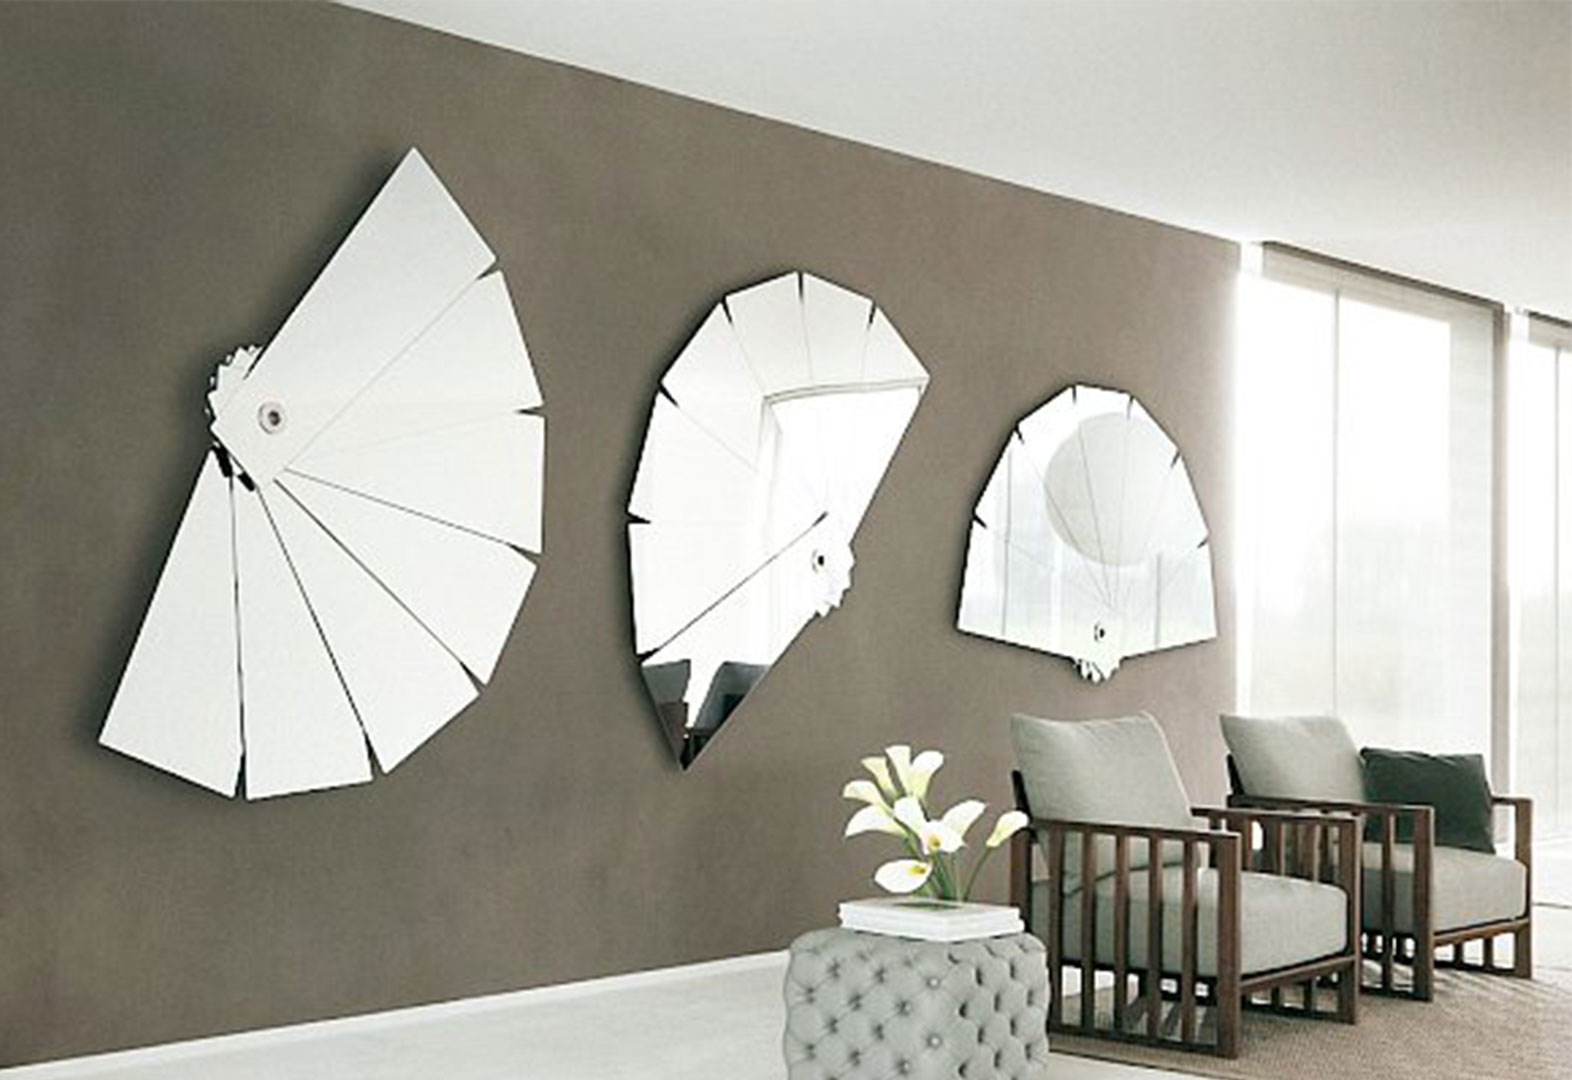 Creative Interior Home Decor Mirrors (Image 3 of 10)